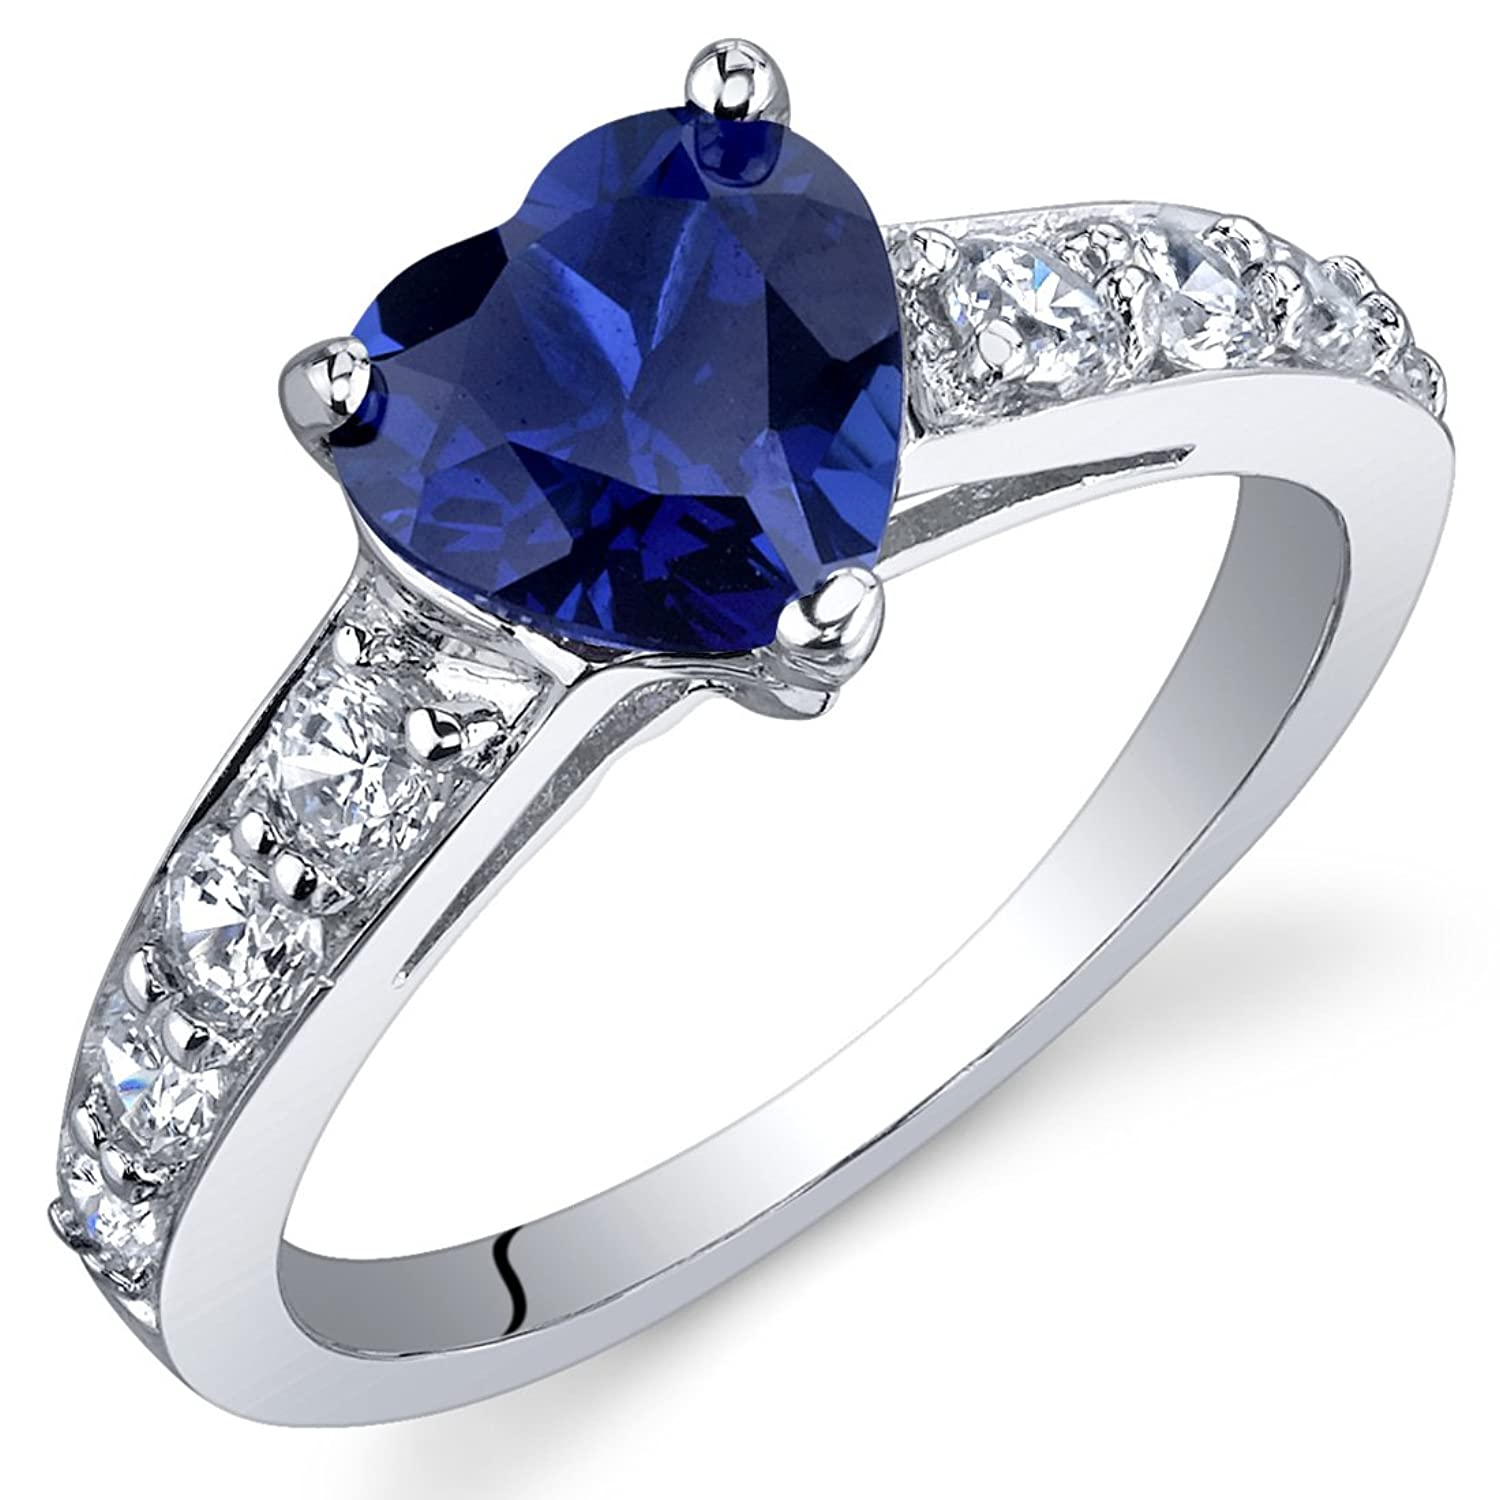 halo september inc sampat ring blue birthstone blog sapphire jewellers